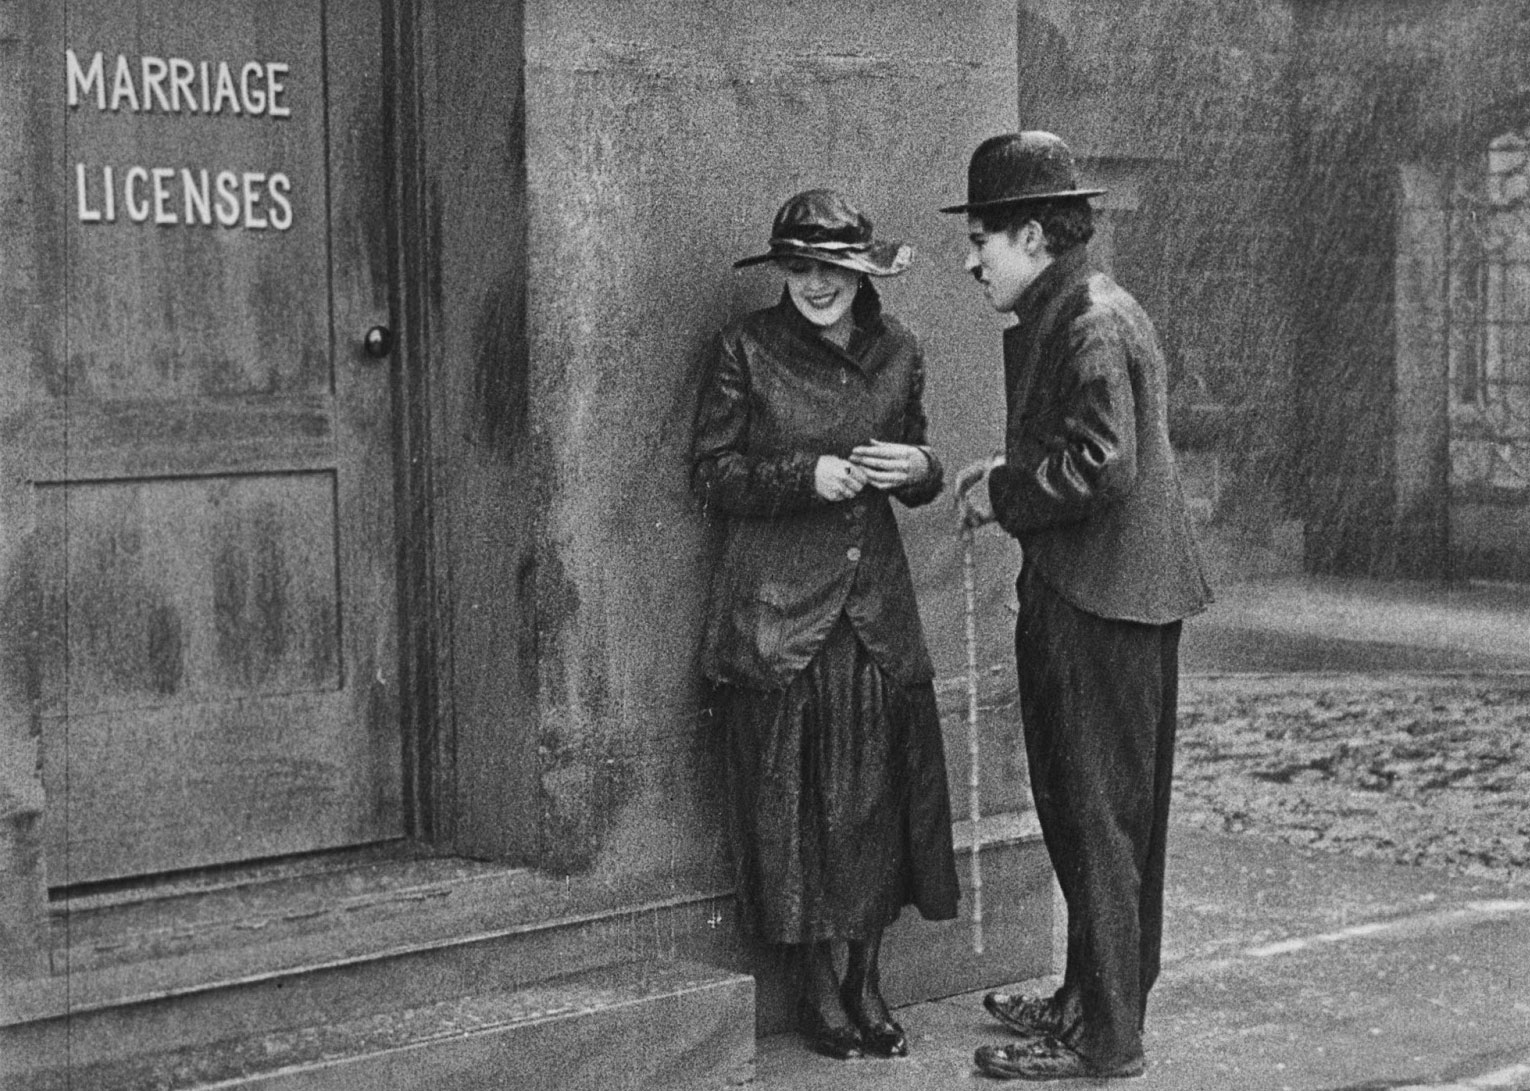 7 Art Cinema | Site Web Officiel | Charlie Chaplin - 1917 - L'Emigrant | 03 | Photographie du Film